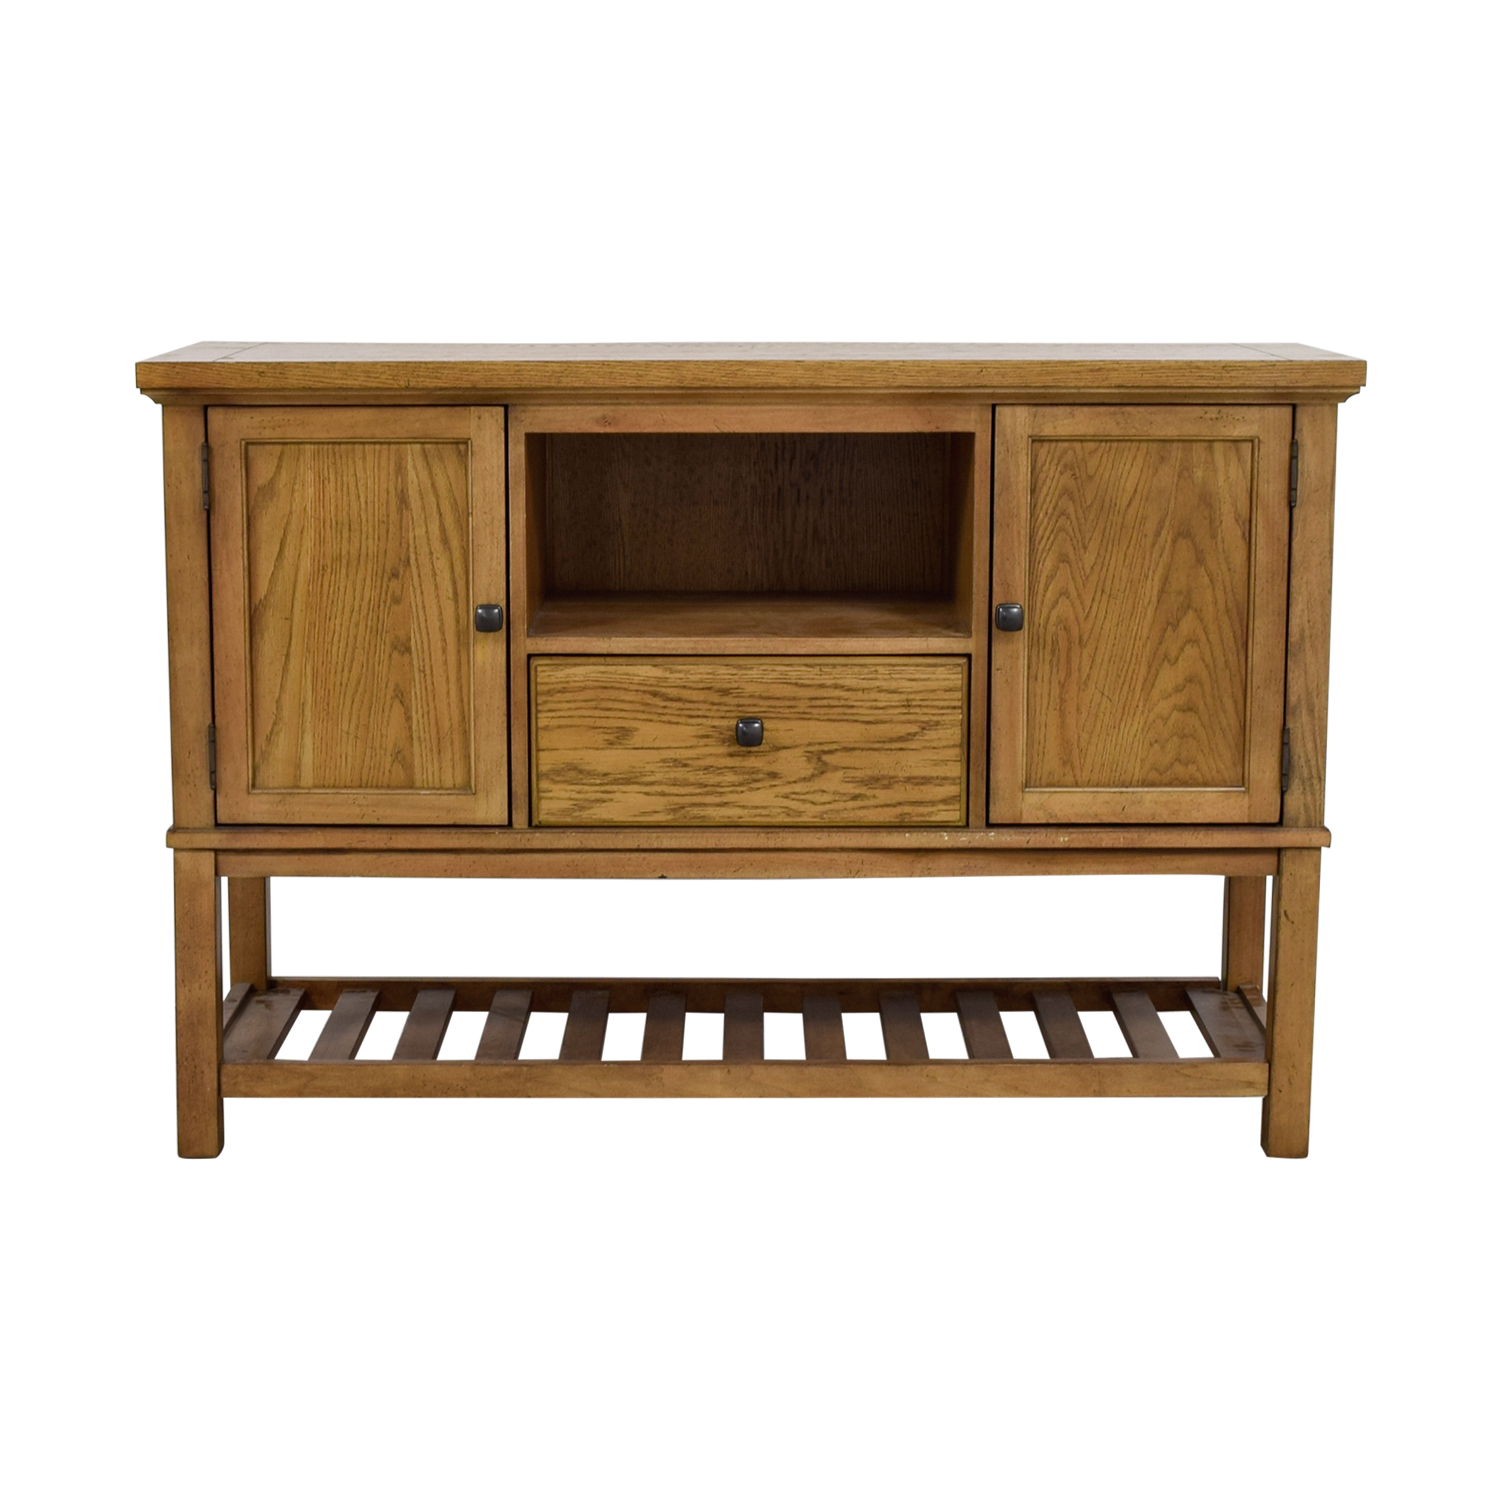 78 Off Legacy Classic Furniture Legacy Classic Furniture Rustic Wood Credenza Storage